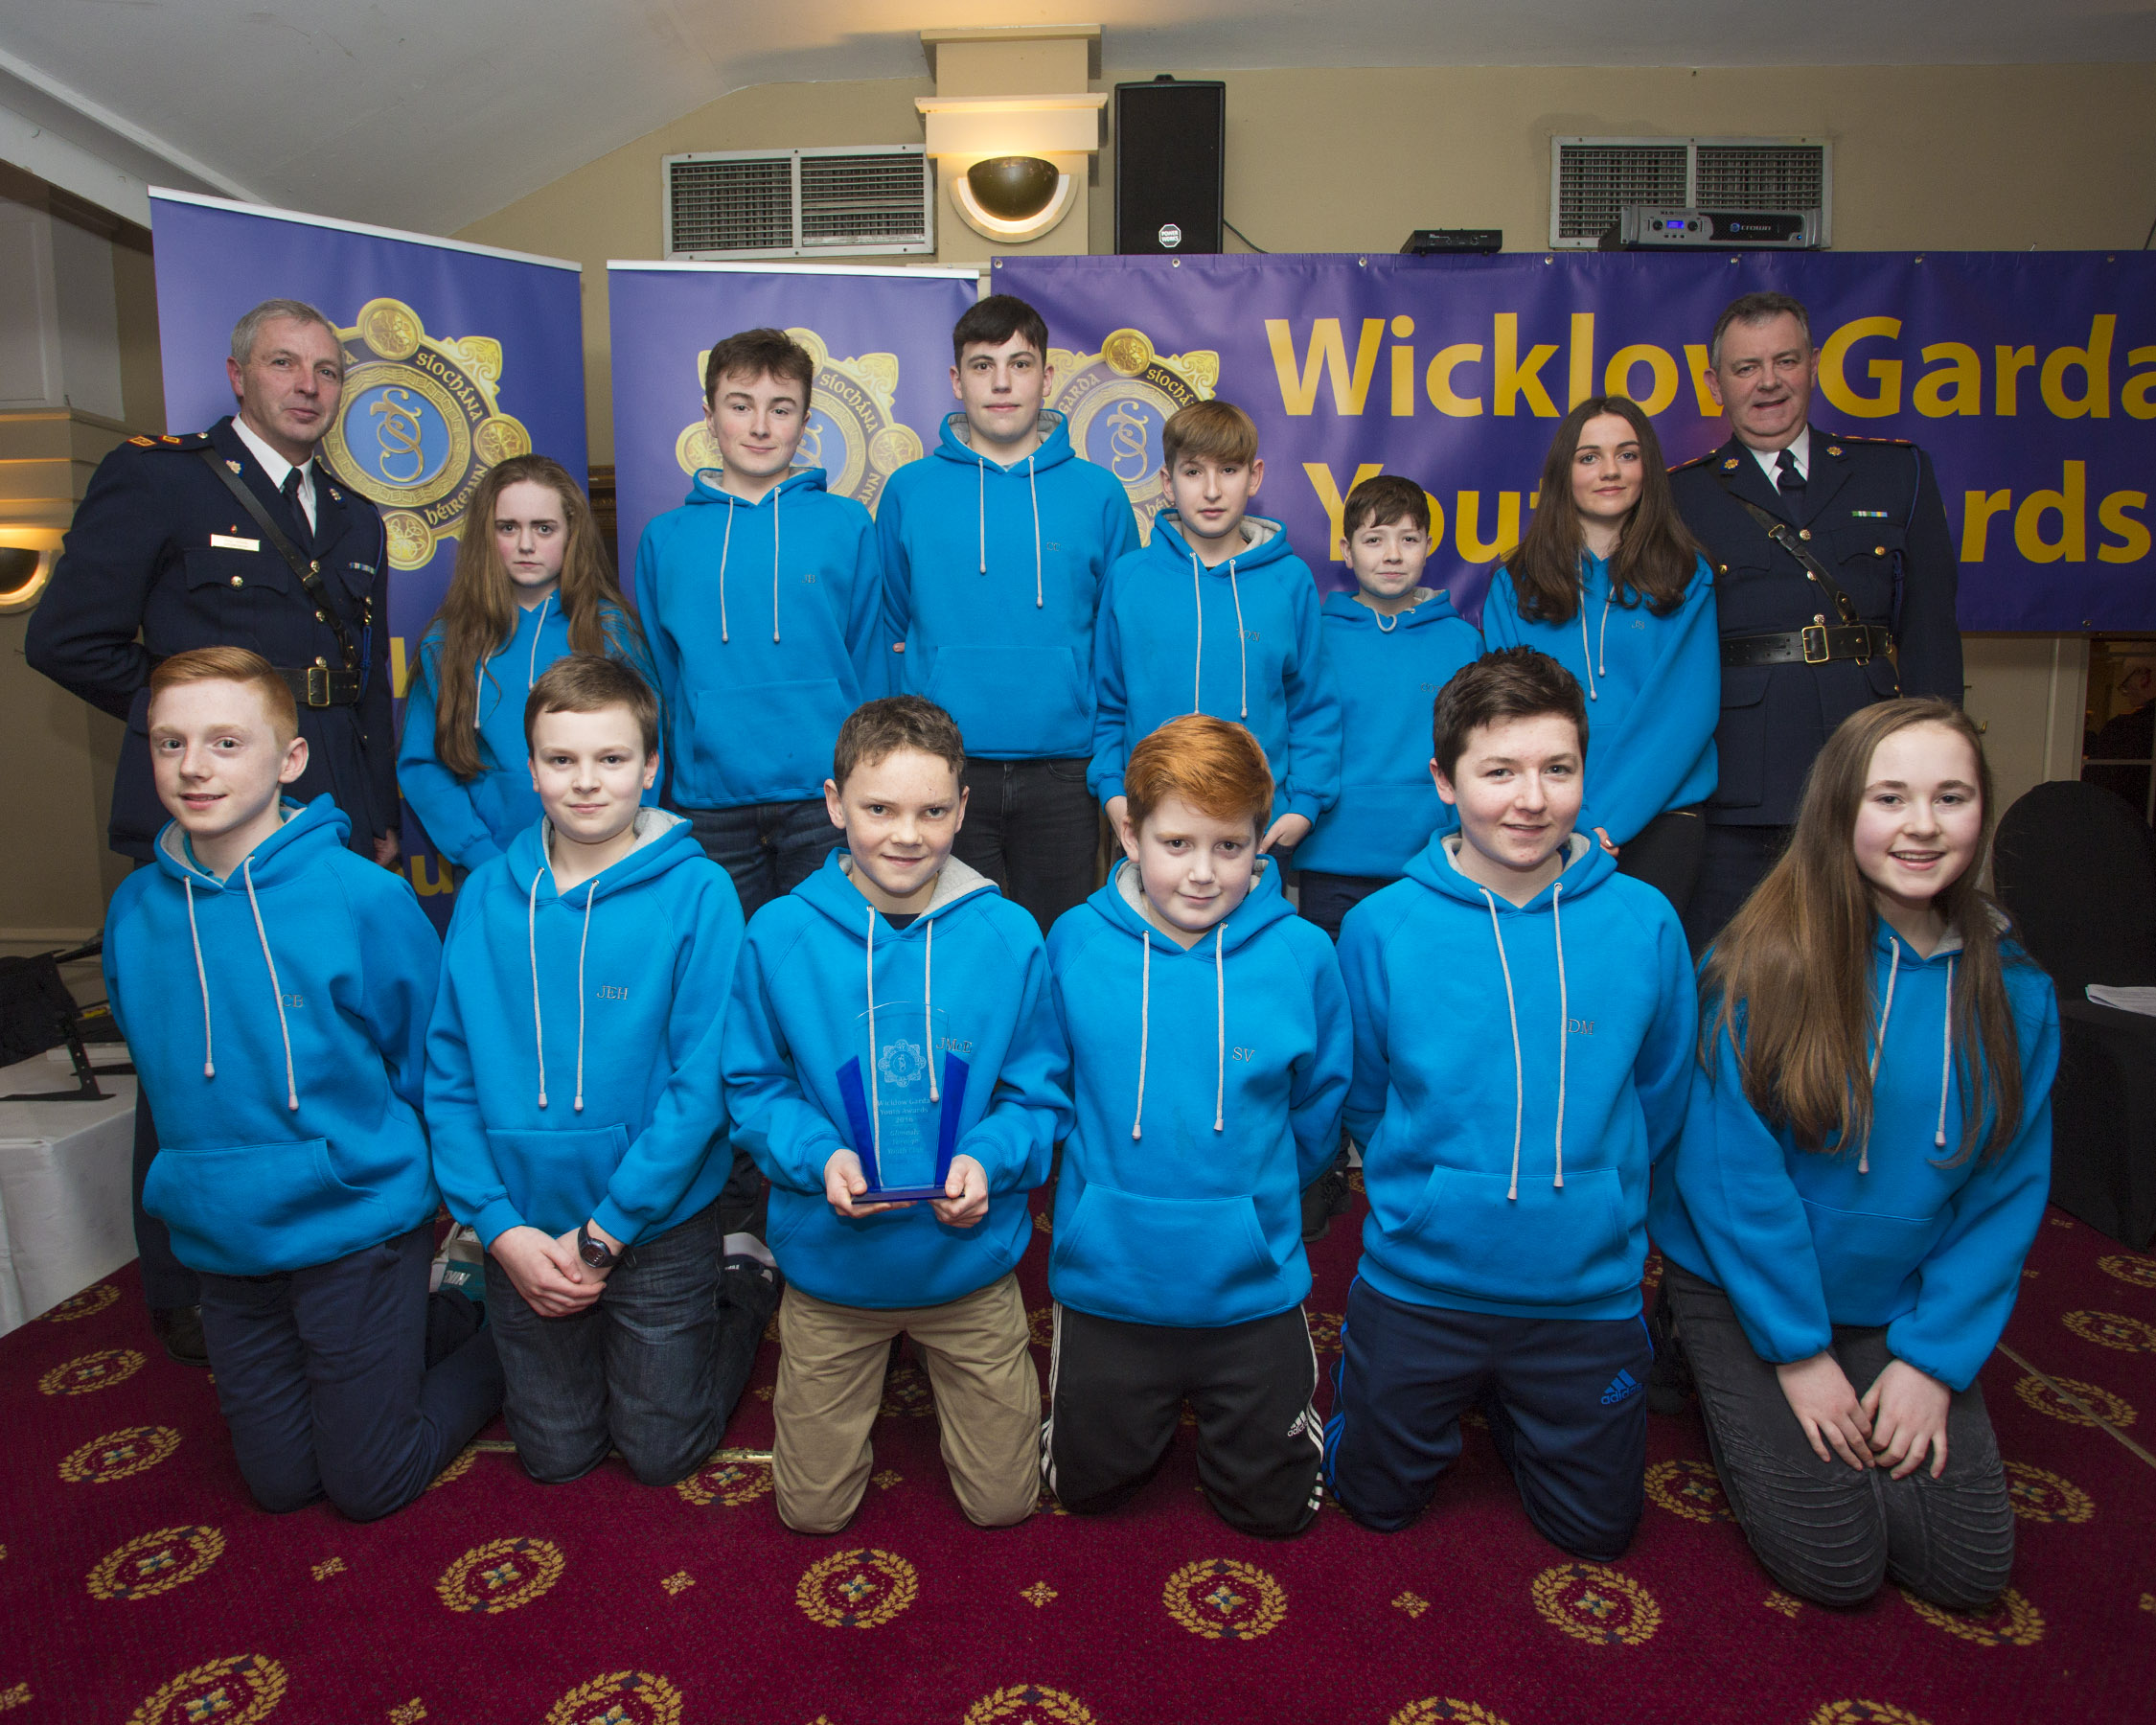 Members of the Glenealy Foroige group recieve their youth award from Superintendant Paul Hogan and Chief Superintendent John Quirke at the 2nd Annual Wicklow Garda Youth Awards which was held in the Grand Hotel, Wicklow Town.